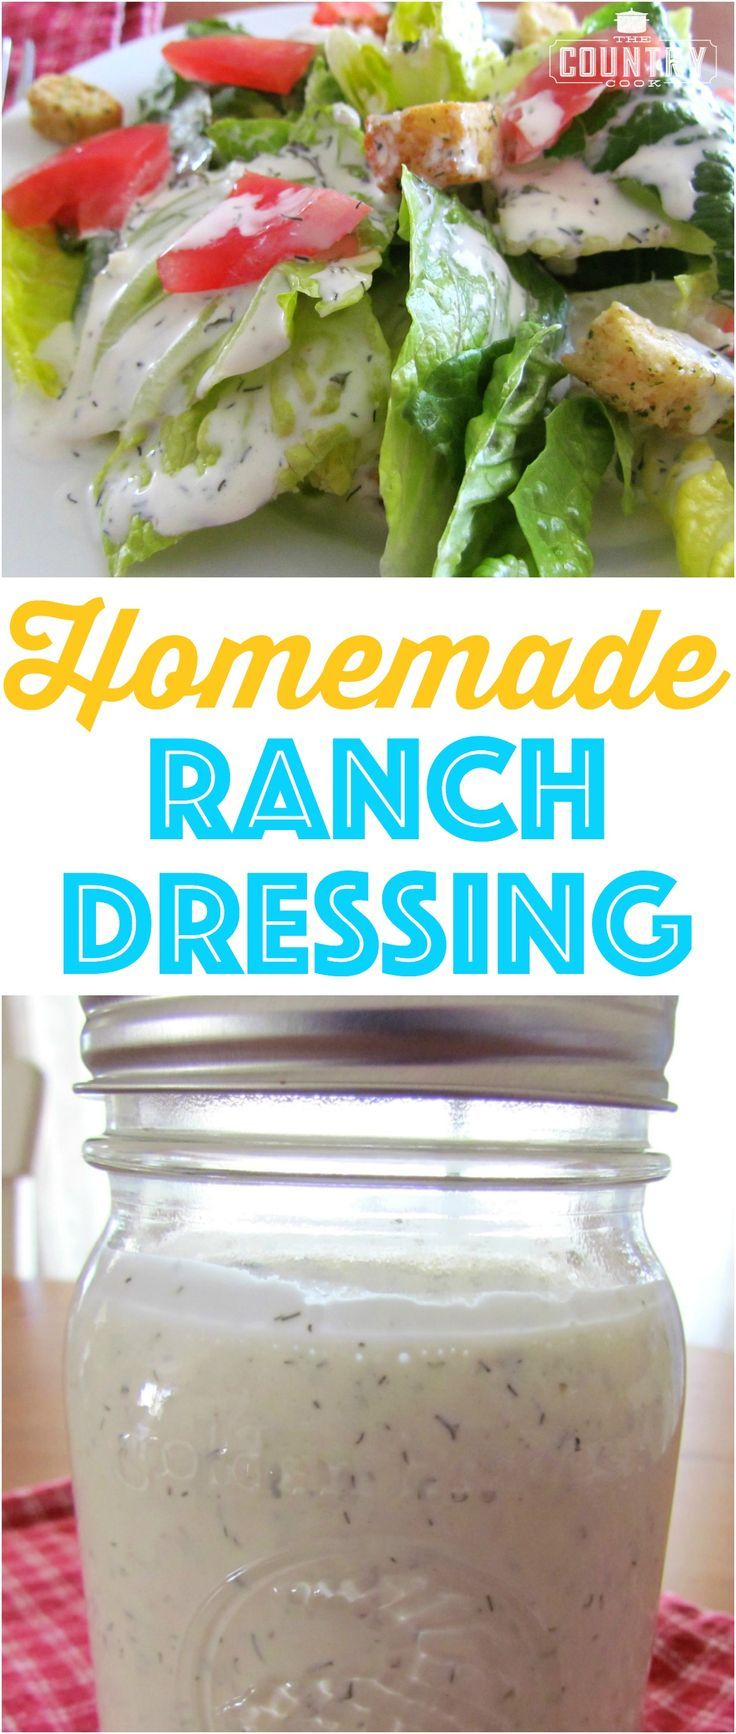 The Best Homemade Ranch Dressing recipe from The Country Cook